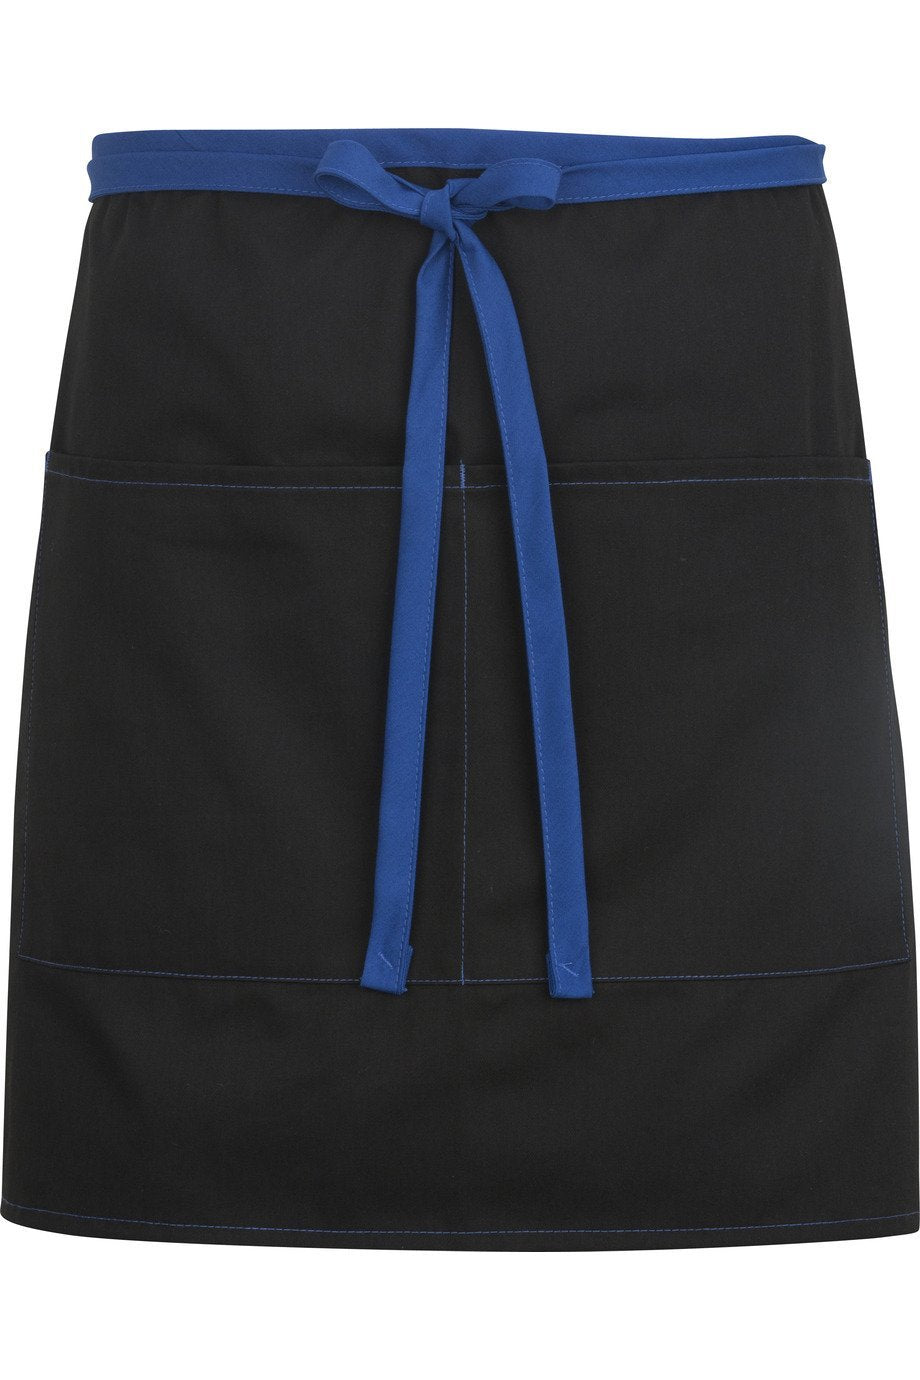 Black w/ Royal Blue Half Bistro Color Block Apron (2 Pockets)